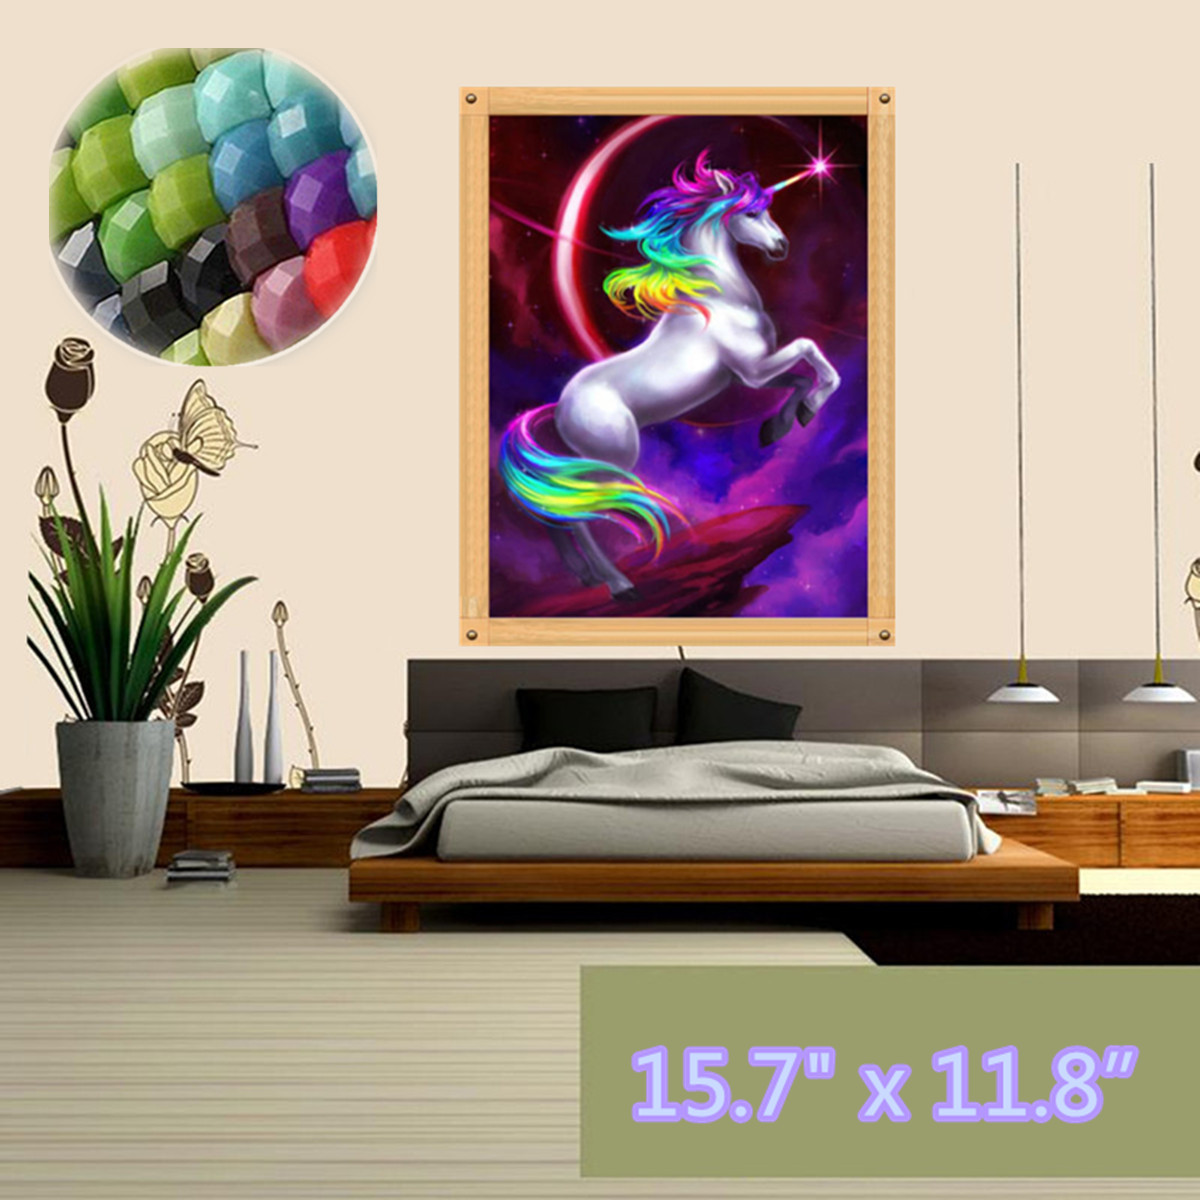 """5D DIY Crystal Diamond Jewelry Wall Art Painting by Number Kit, Full Drill Flying Unicor n Animal Embroidery Cross Stitch Rhinestone Pictures Arts Craft Home Wall Decor 11.8x15.8"""""""